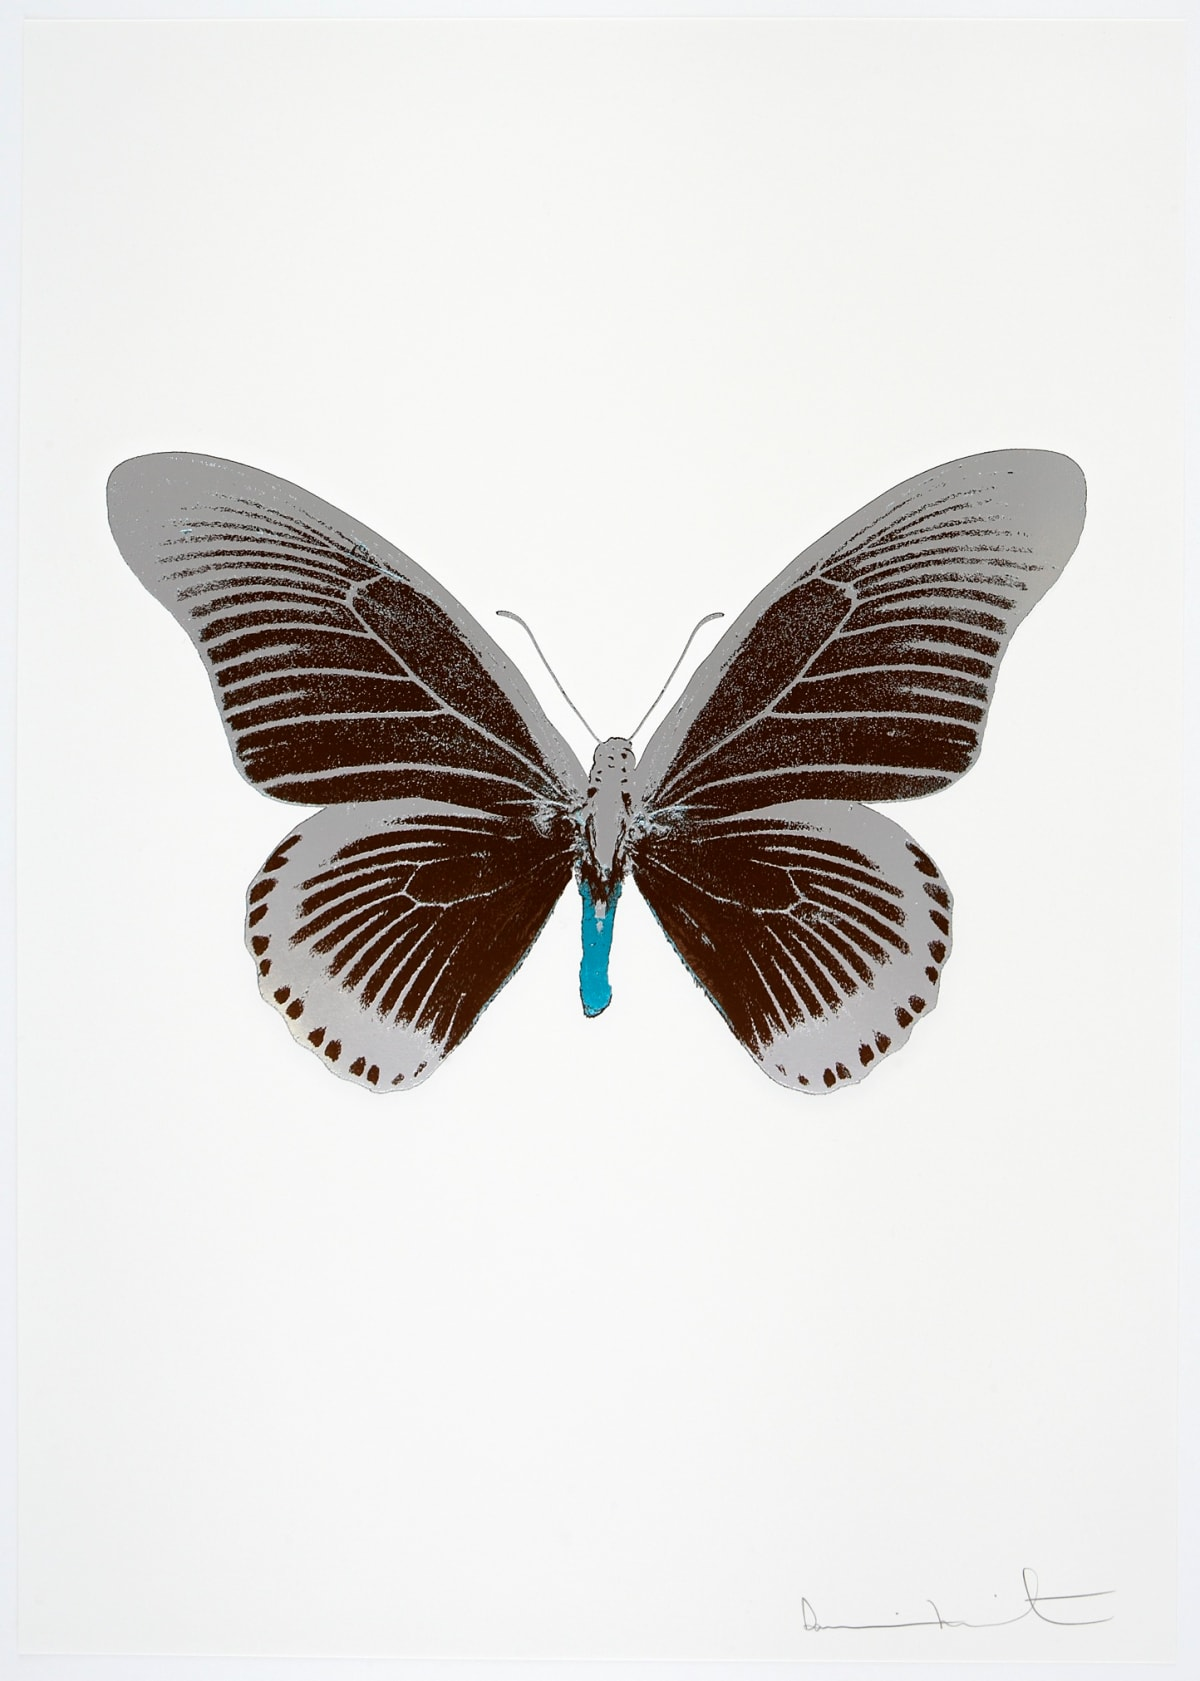 Damien Hirst The Souls IV - Chocolate/Silver Gloss/Topaz, 2010 3 colour foil block on 300gsm Arches 88 archival paper. Signed and numbered. Published by Paul Stolper and Other Criteria 72 x 51cm OC8018 / 1418-41 Edition of 15